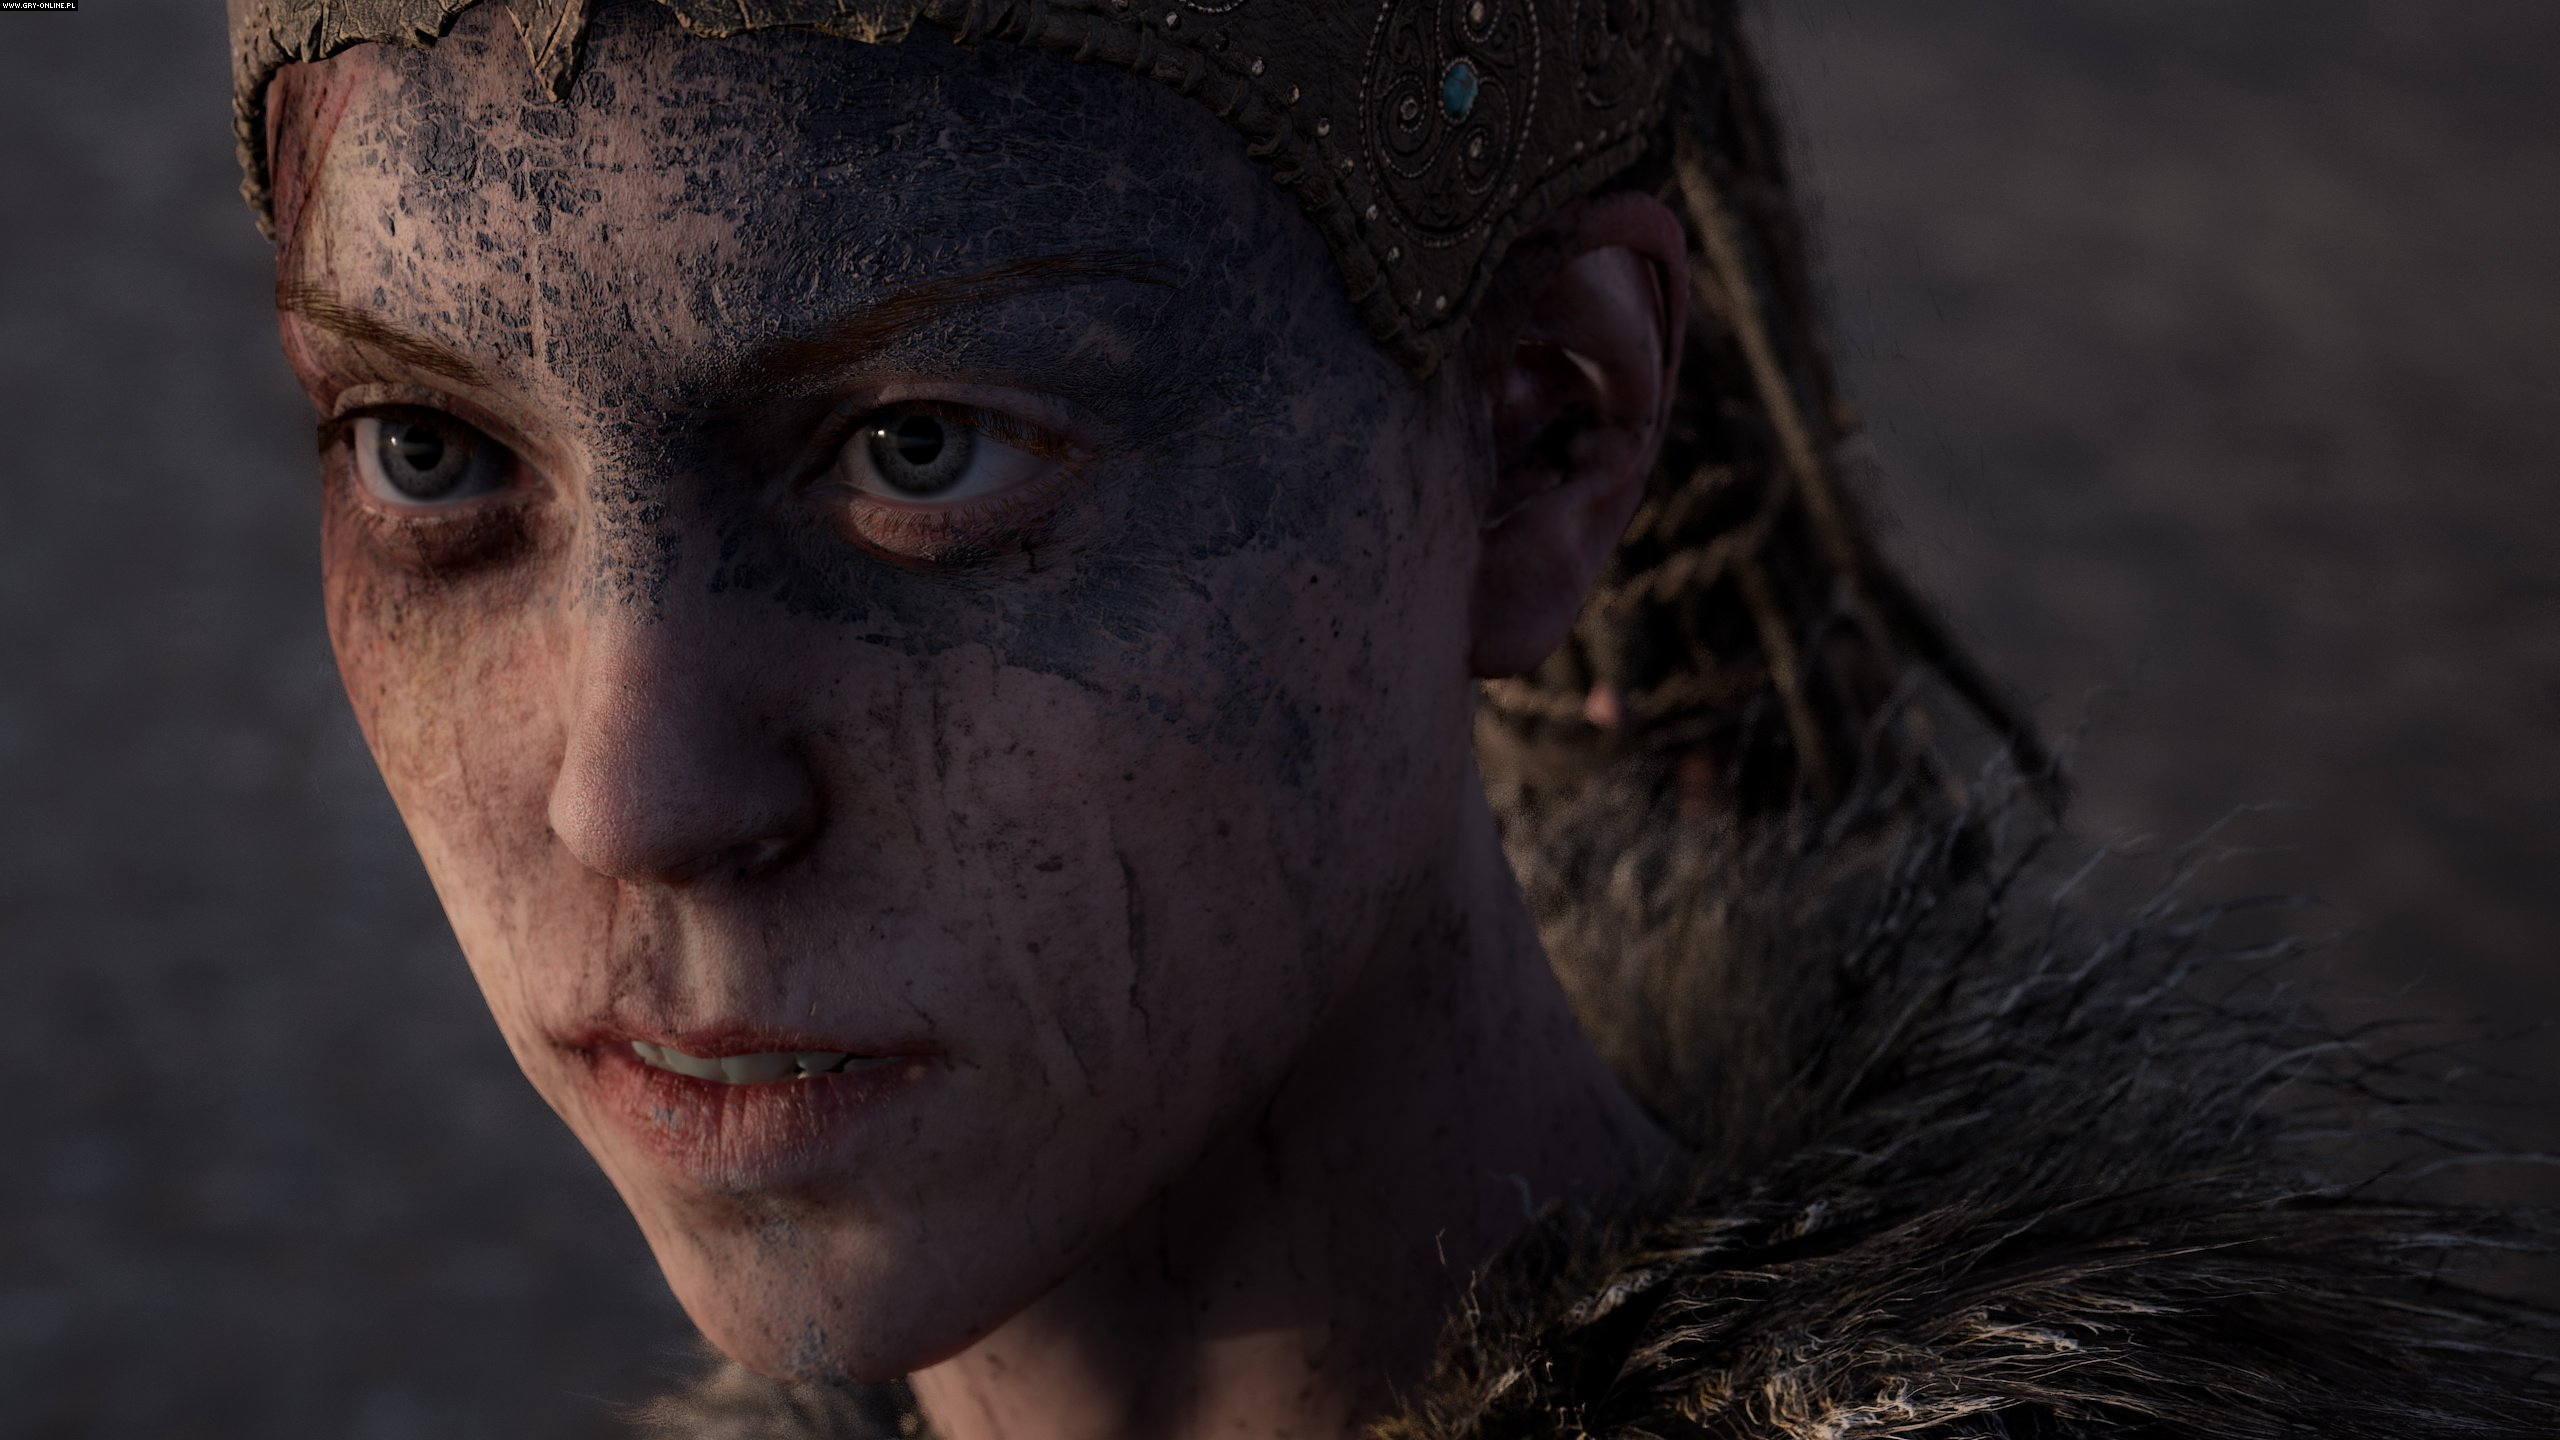 Hellblade: Senua's Sacrifice PC, PS4, XONE Gry Screen 9/17, Ninja Theory